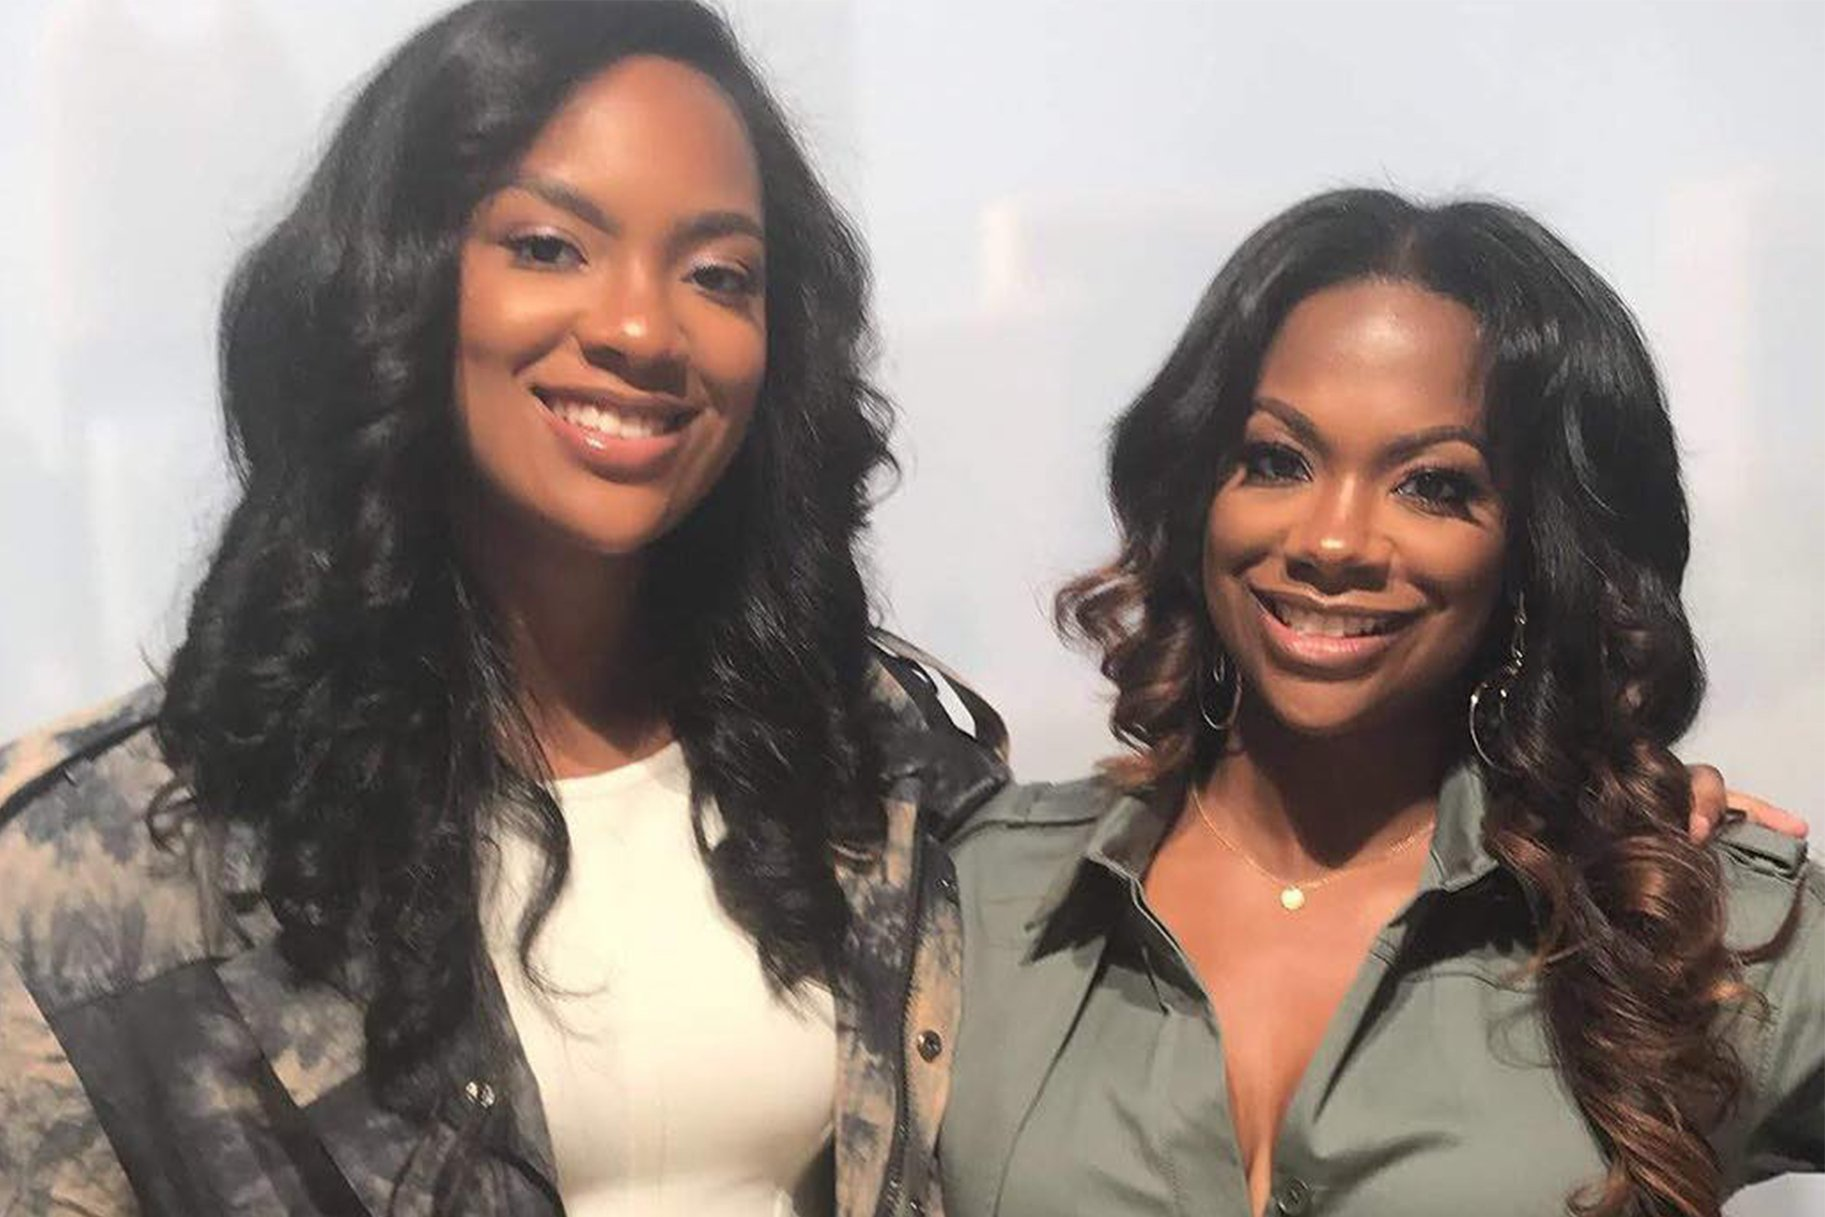 Kandi Burruss Daughter Riley Opens Up About Their Unbreakable Bond